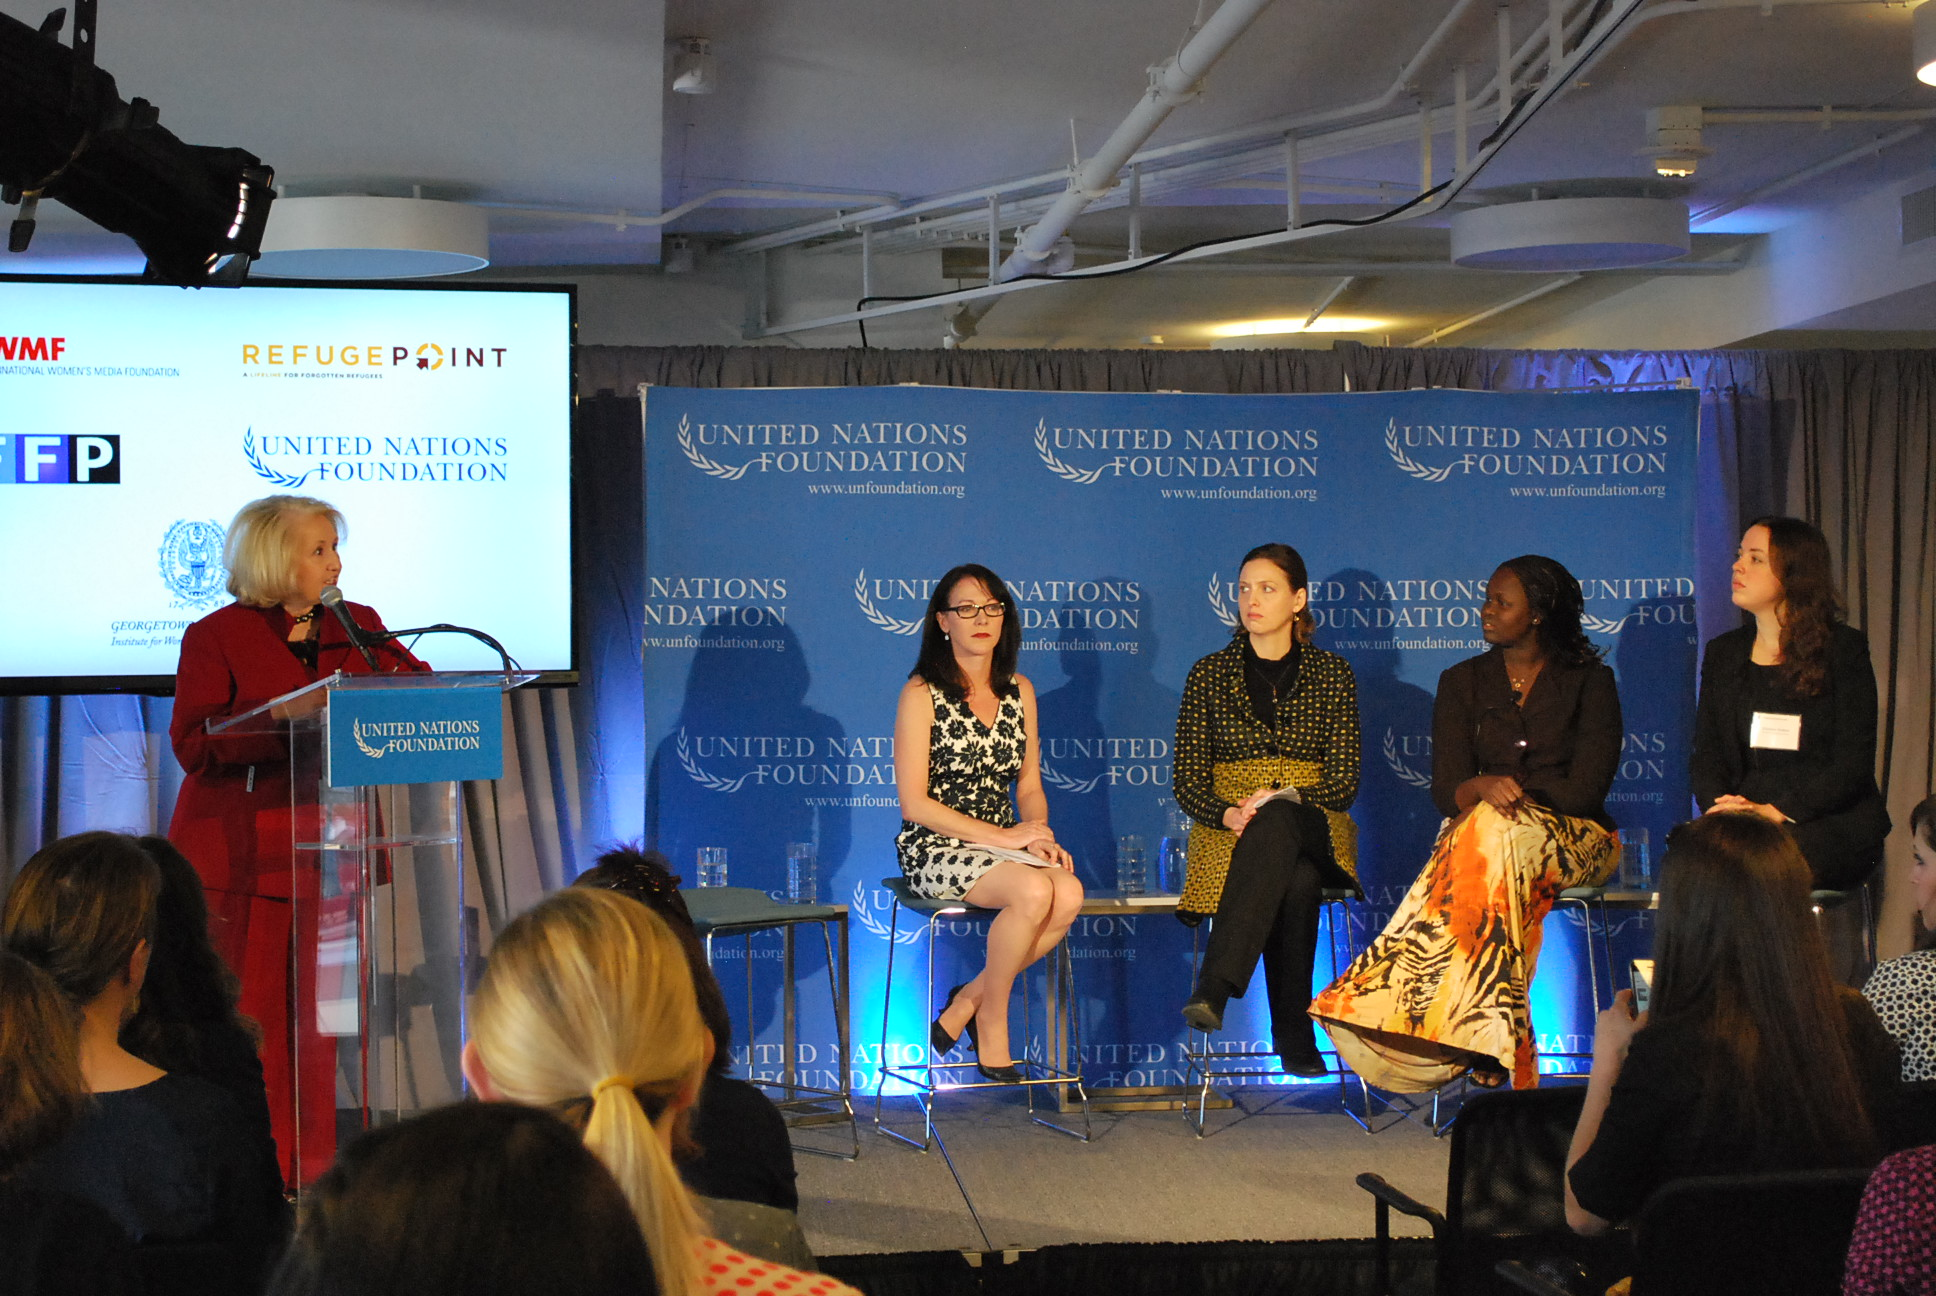 Panel sitting on the UN Foundation's Women in Fragile States event. Photo: Tonya Fitzpatrick